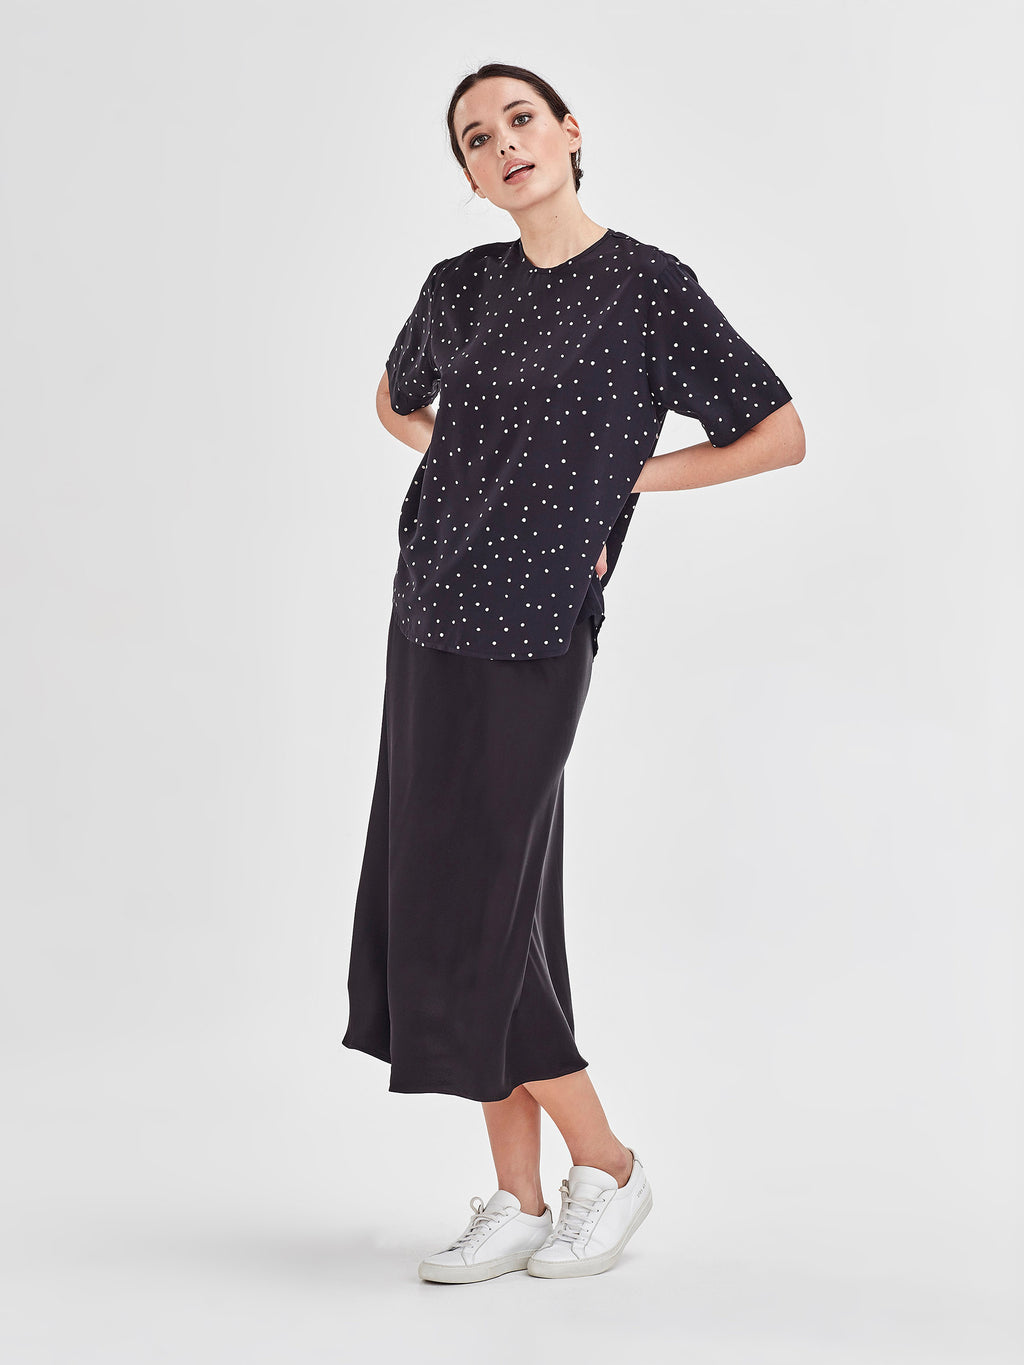 Drape T (Spotty Viscose) Black Dot